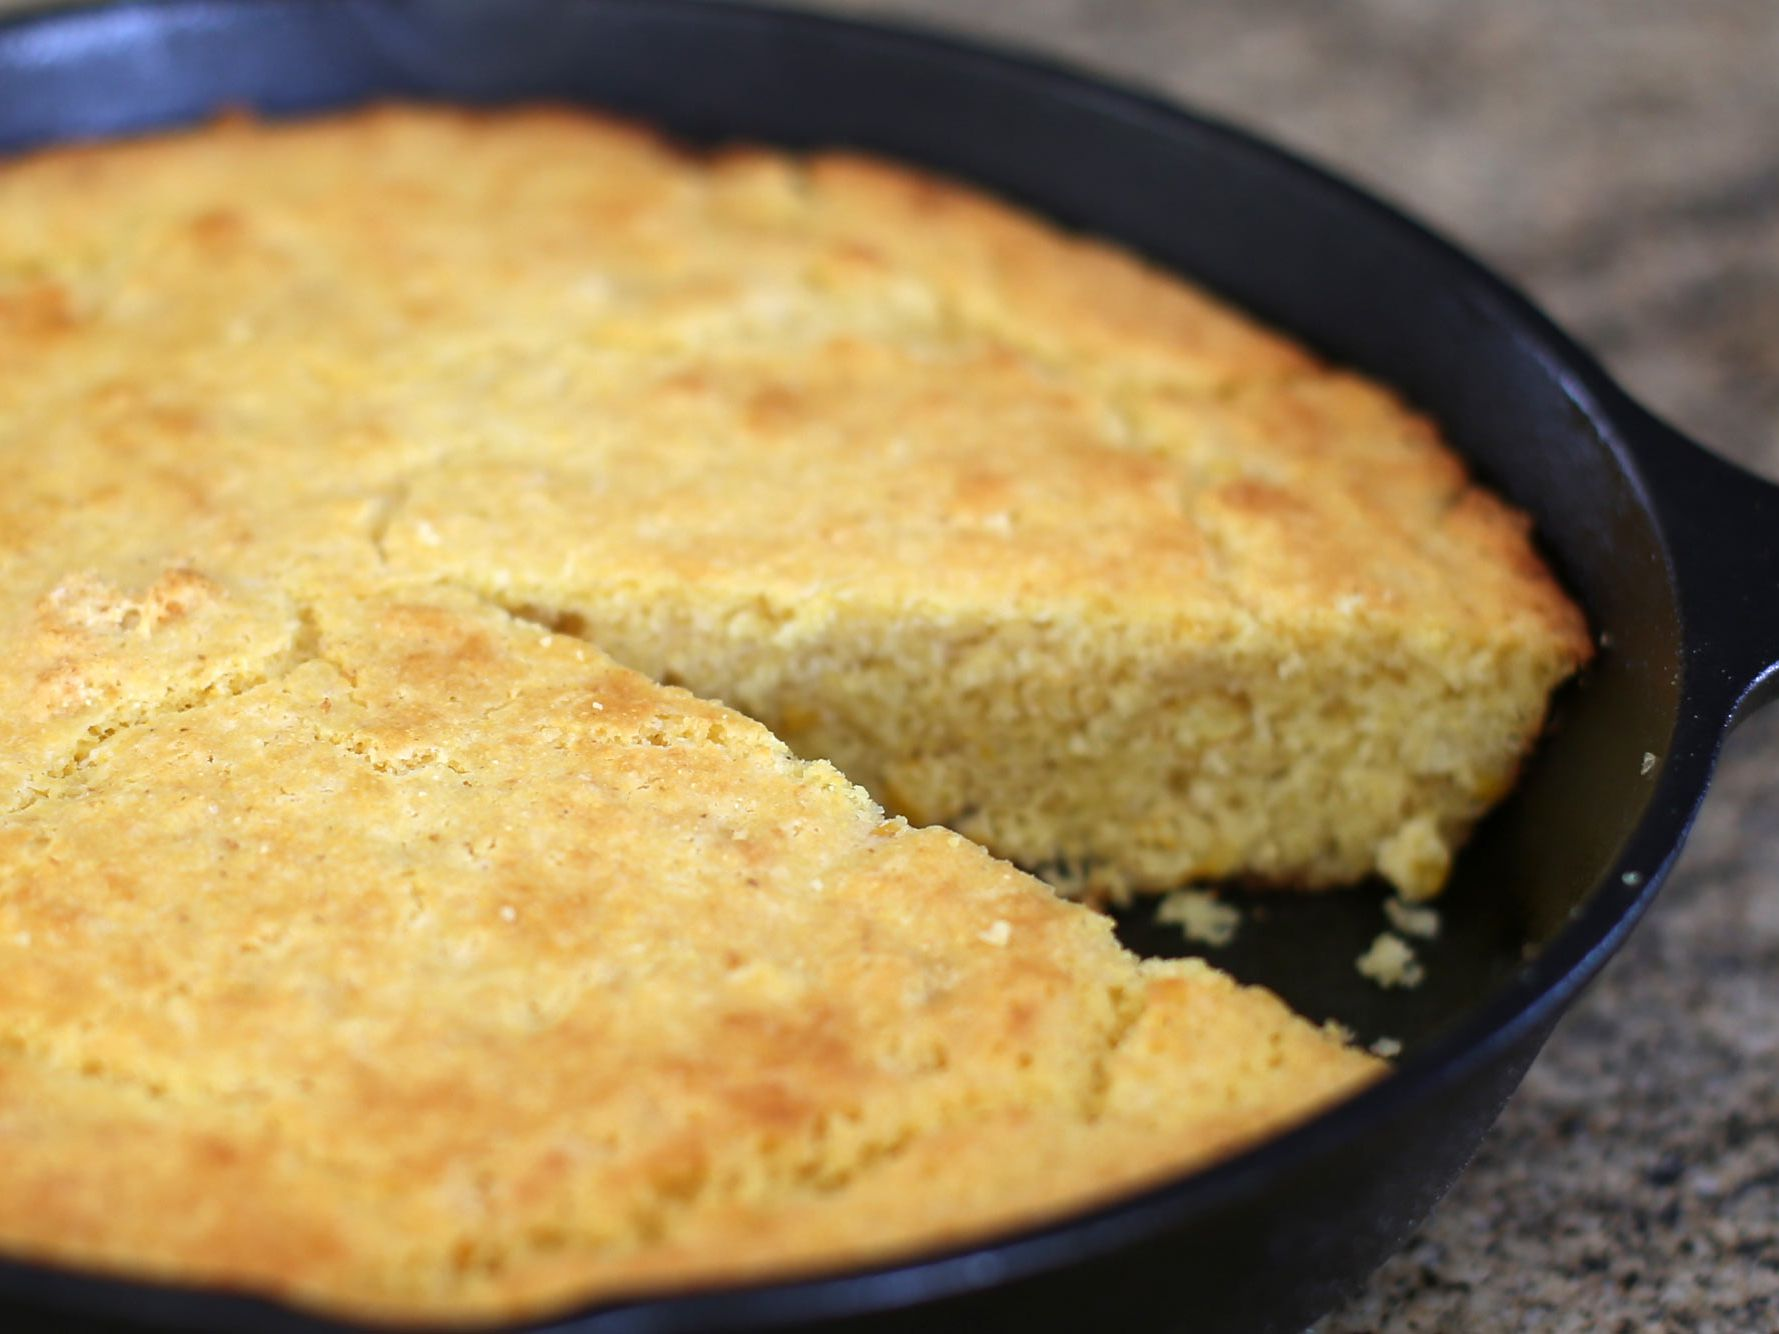 Homemade Self-Rising Cornmeal Mix for Cornbread Recipe